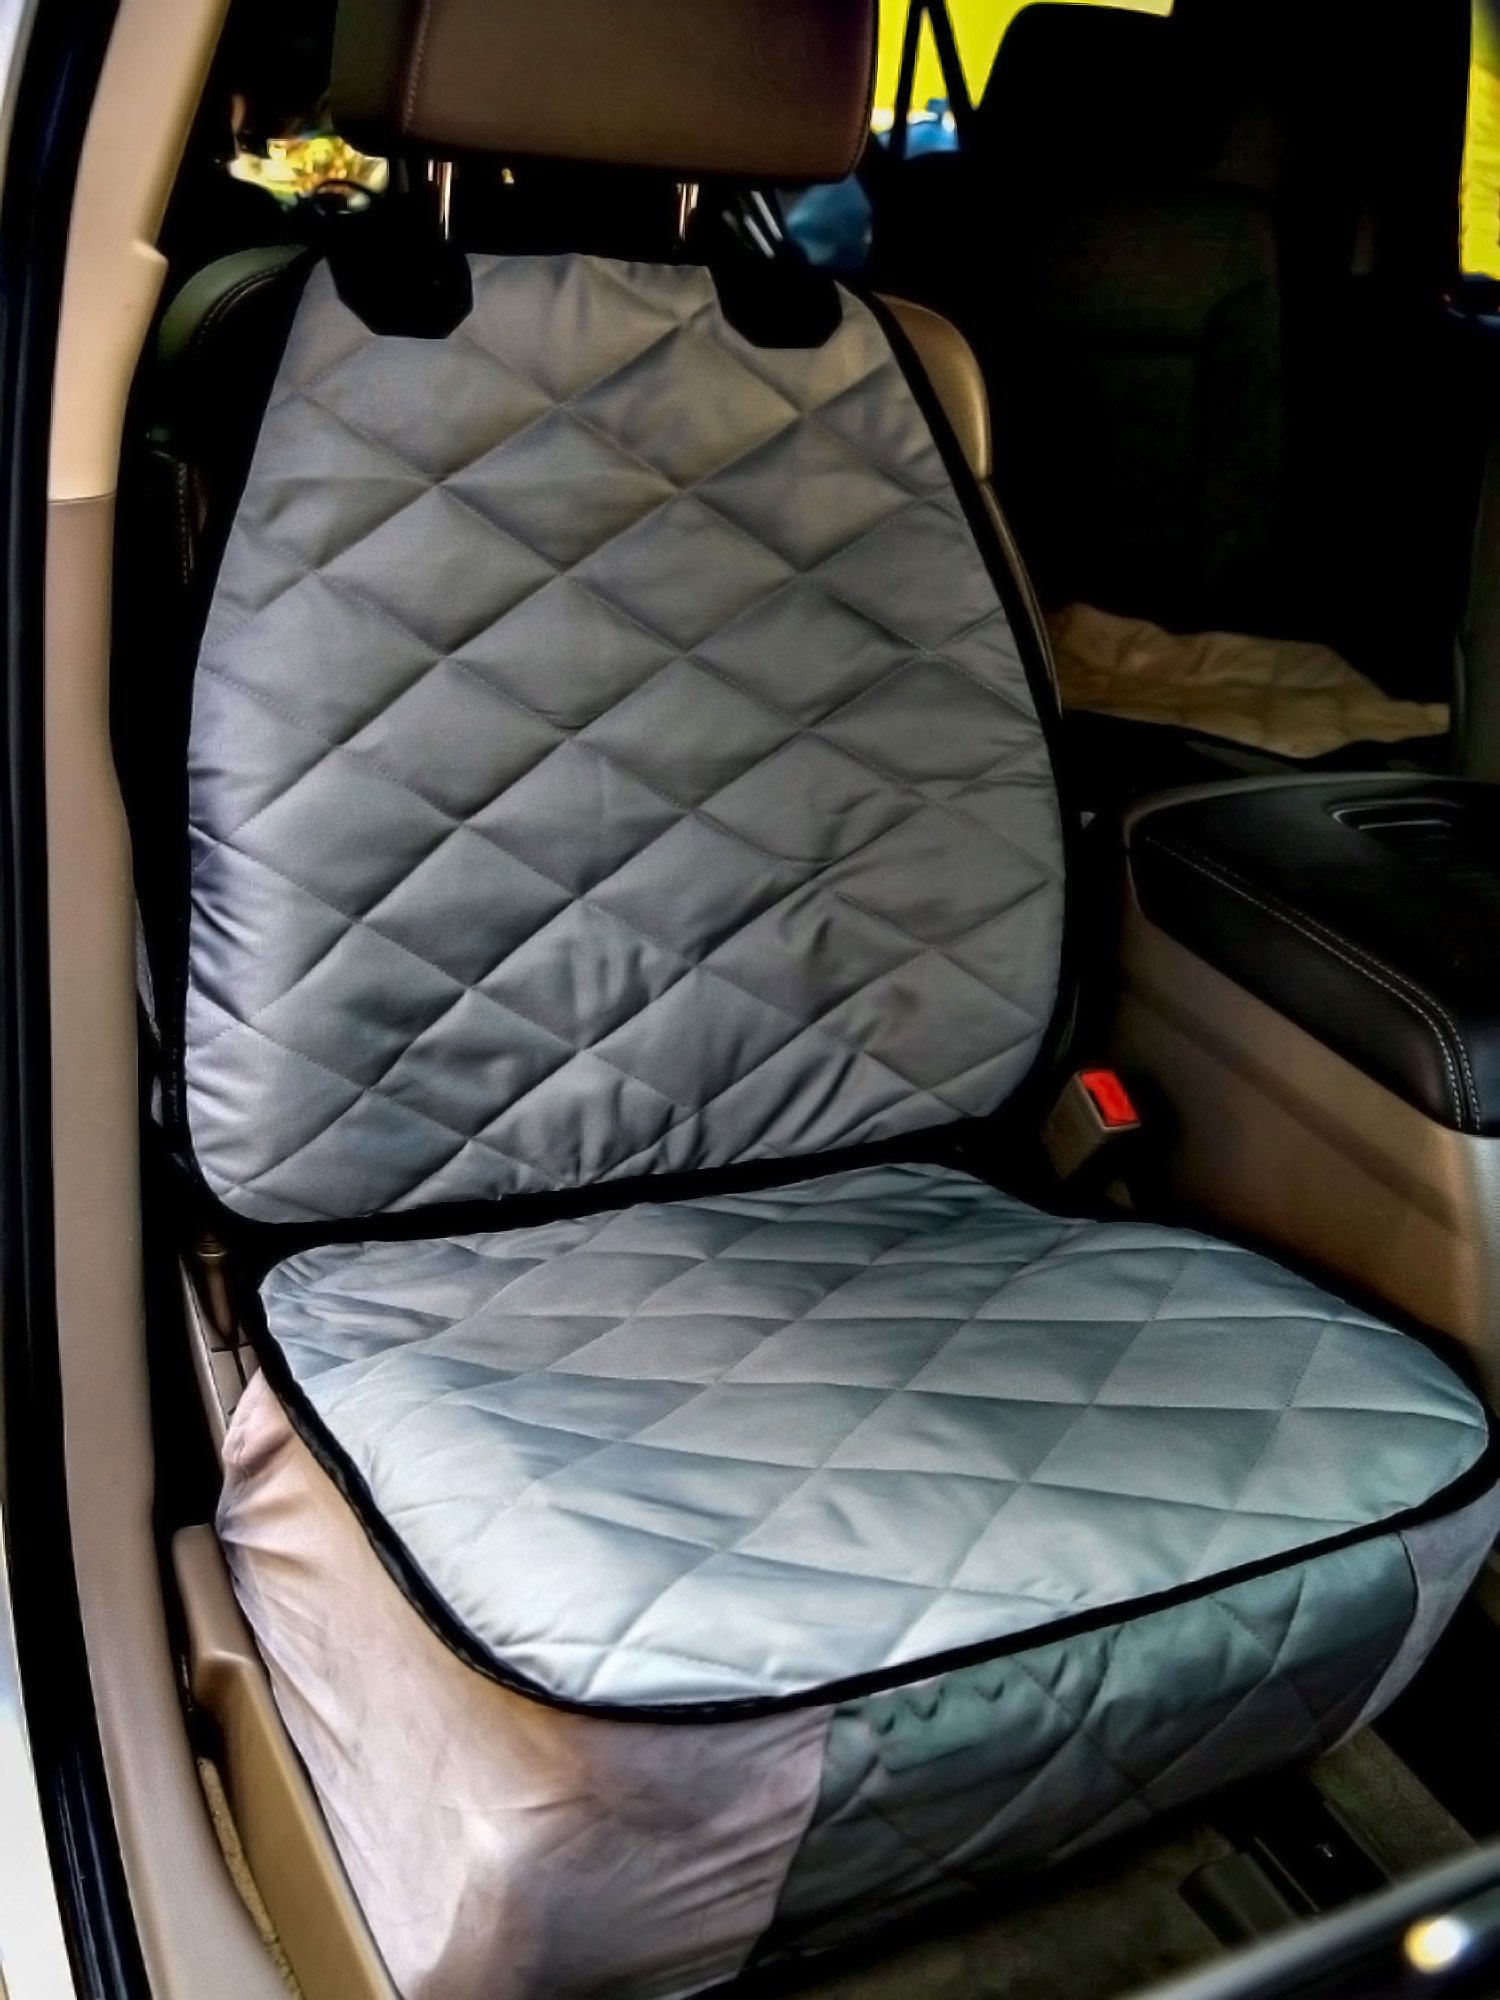 Plush Paws Co-Pilot Pet Car Seat Cover for Bucket Seats with Bonus Harness and Seat Belt for Cars, Trucks, SUV'S and Vehicles - Grey